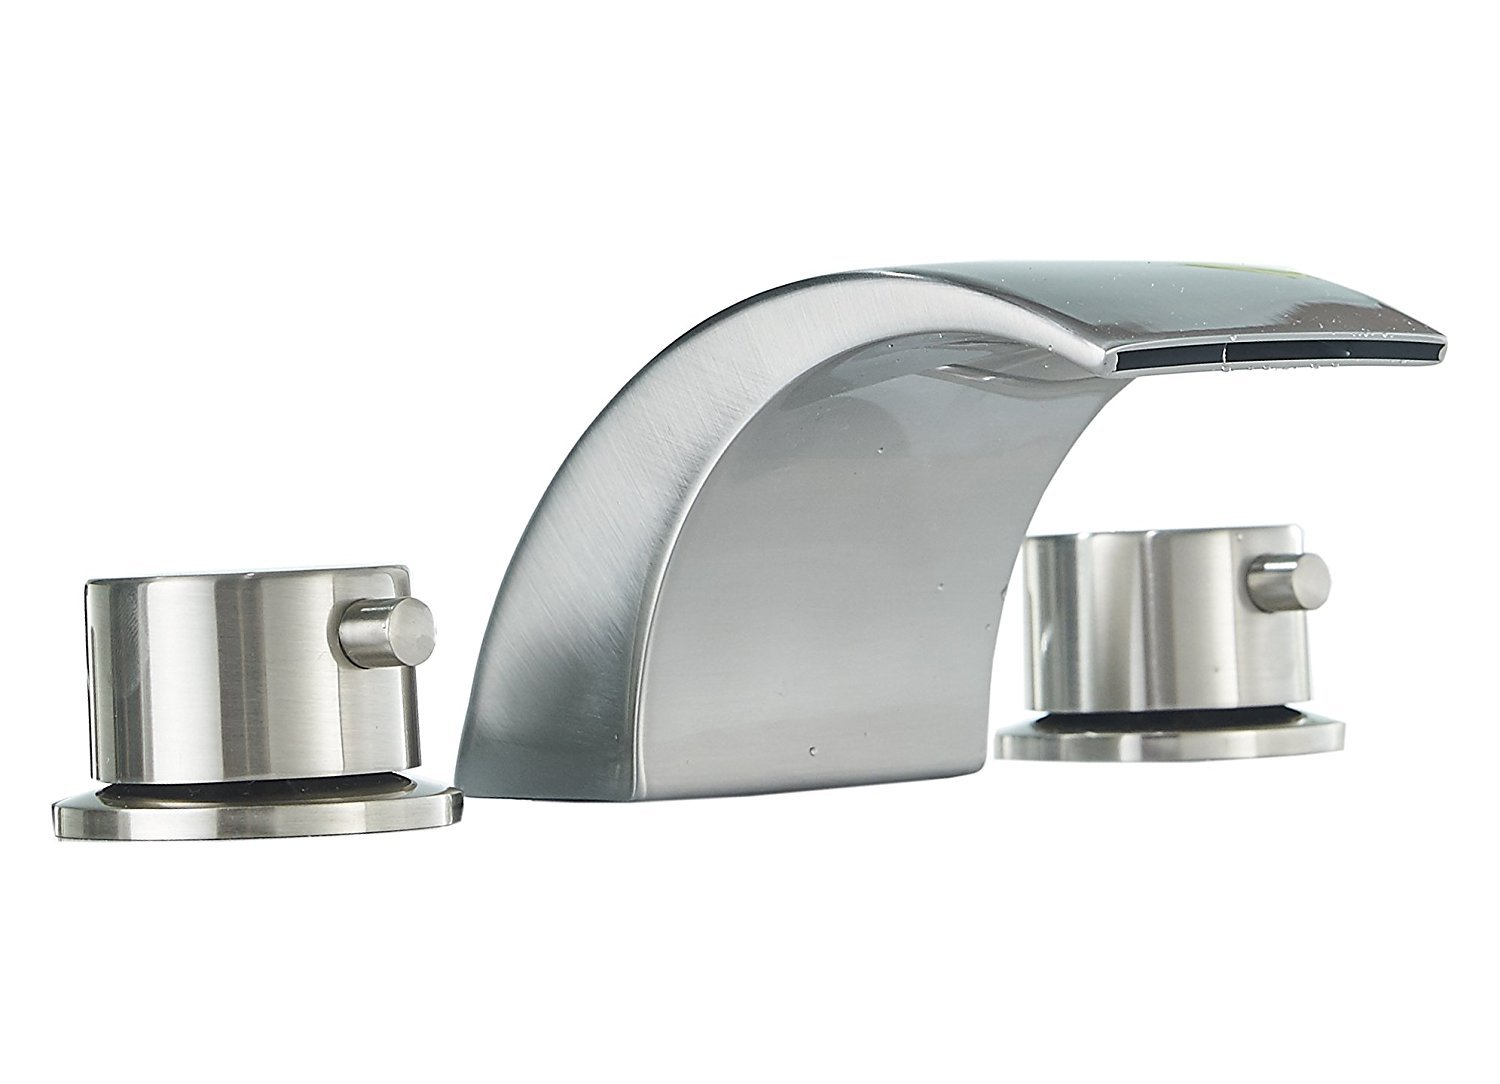 Homevacious Widespread Bathroom Sink Faucet Led Light Waterfall Bath Tub Brushed Nickel 8-16 inch Two Handles Three Holes Bath Waterfall Lavatory Faucet Deck Mount Mixer Tap Contemporary No Battery by Homevacious